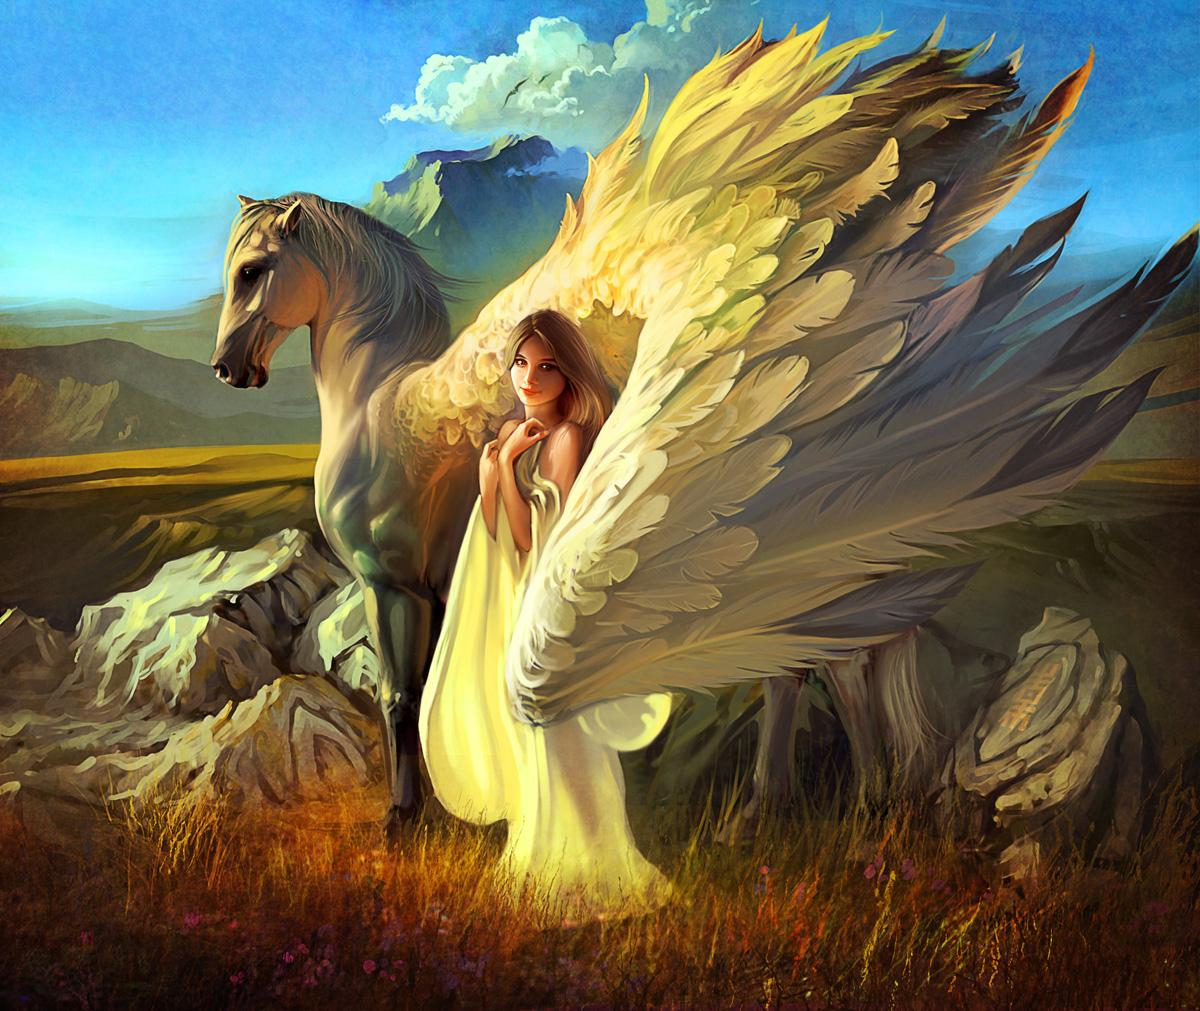 girl_and_pegasus_by_rhads-d412l7a.jpg (1200×1011)